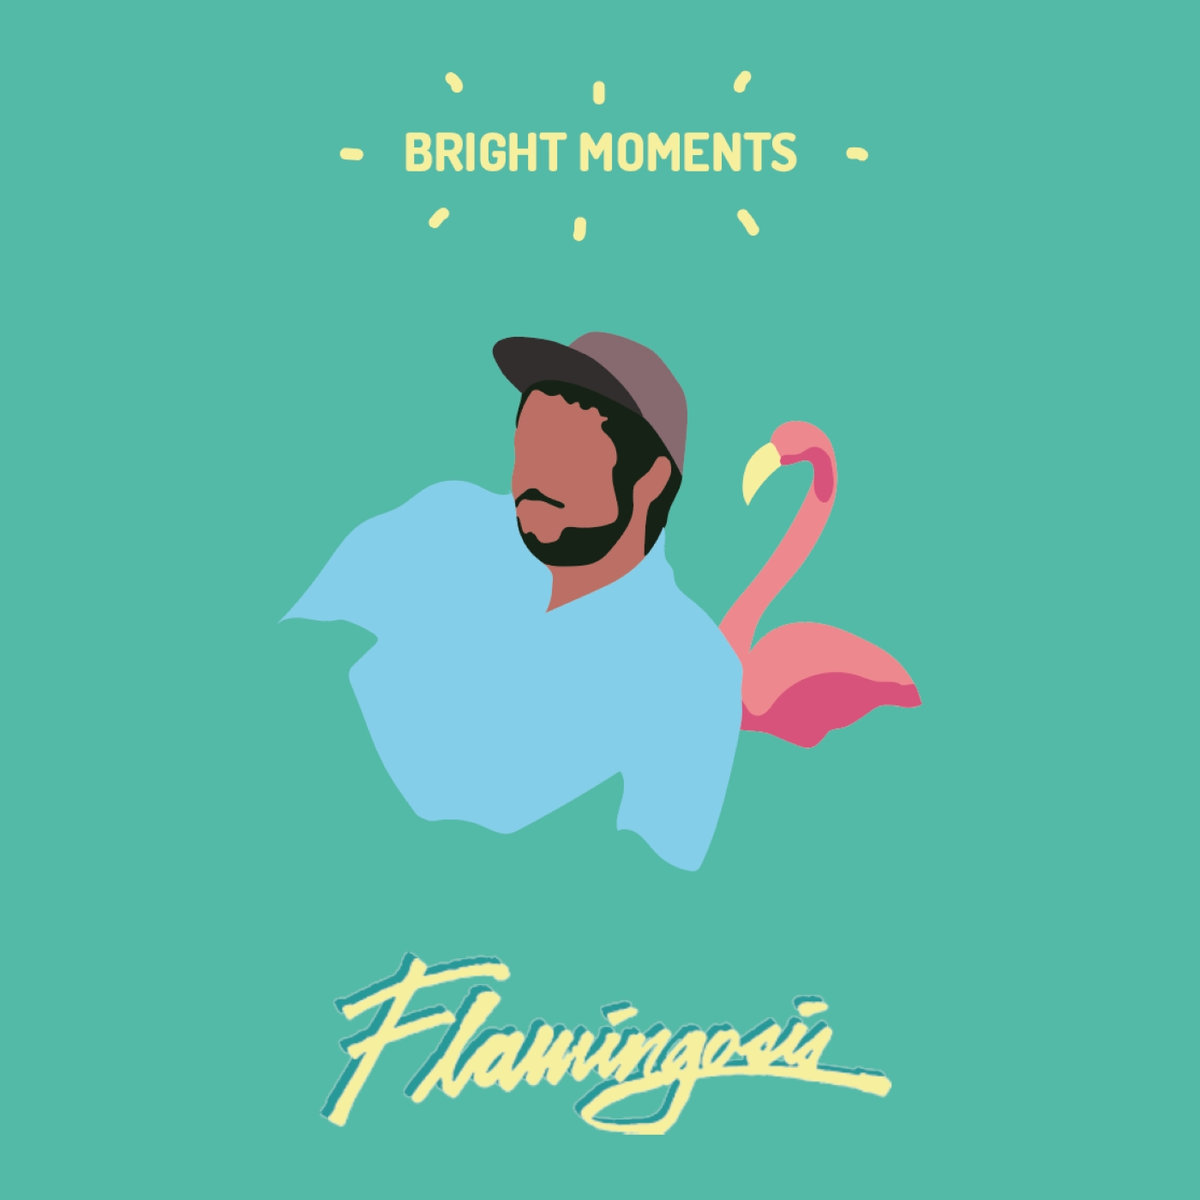 flamingosis-bright-moments-artwork